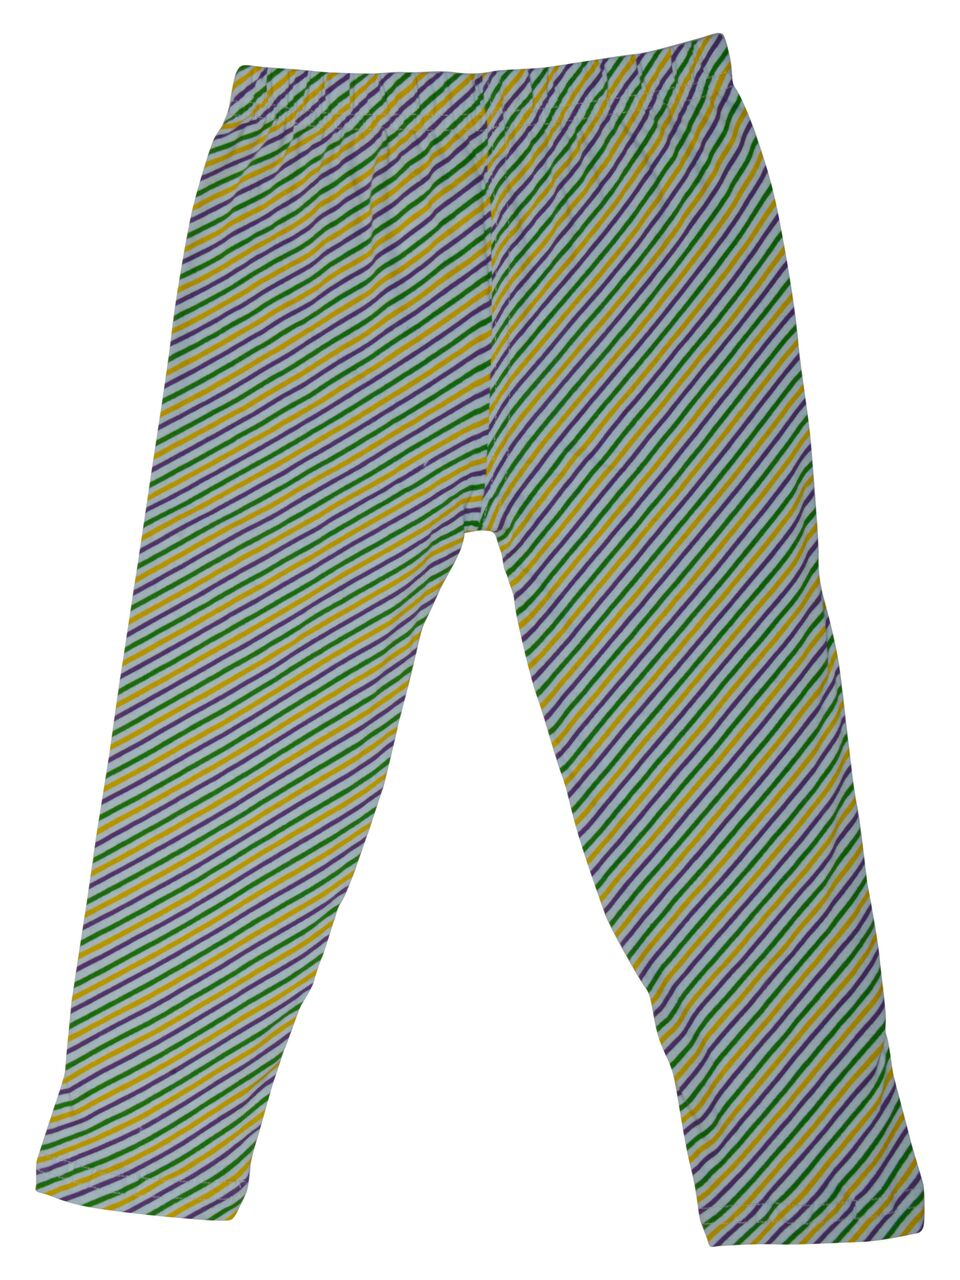 Purple Green Gold Candy Cane Print Kids Tights/Leggings